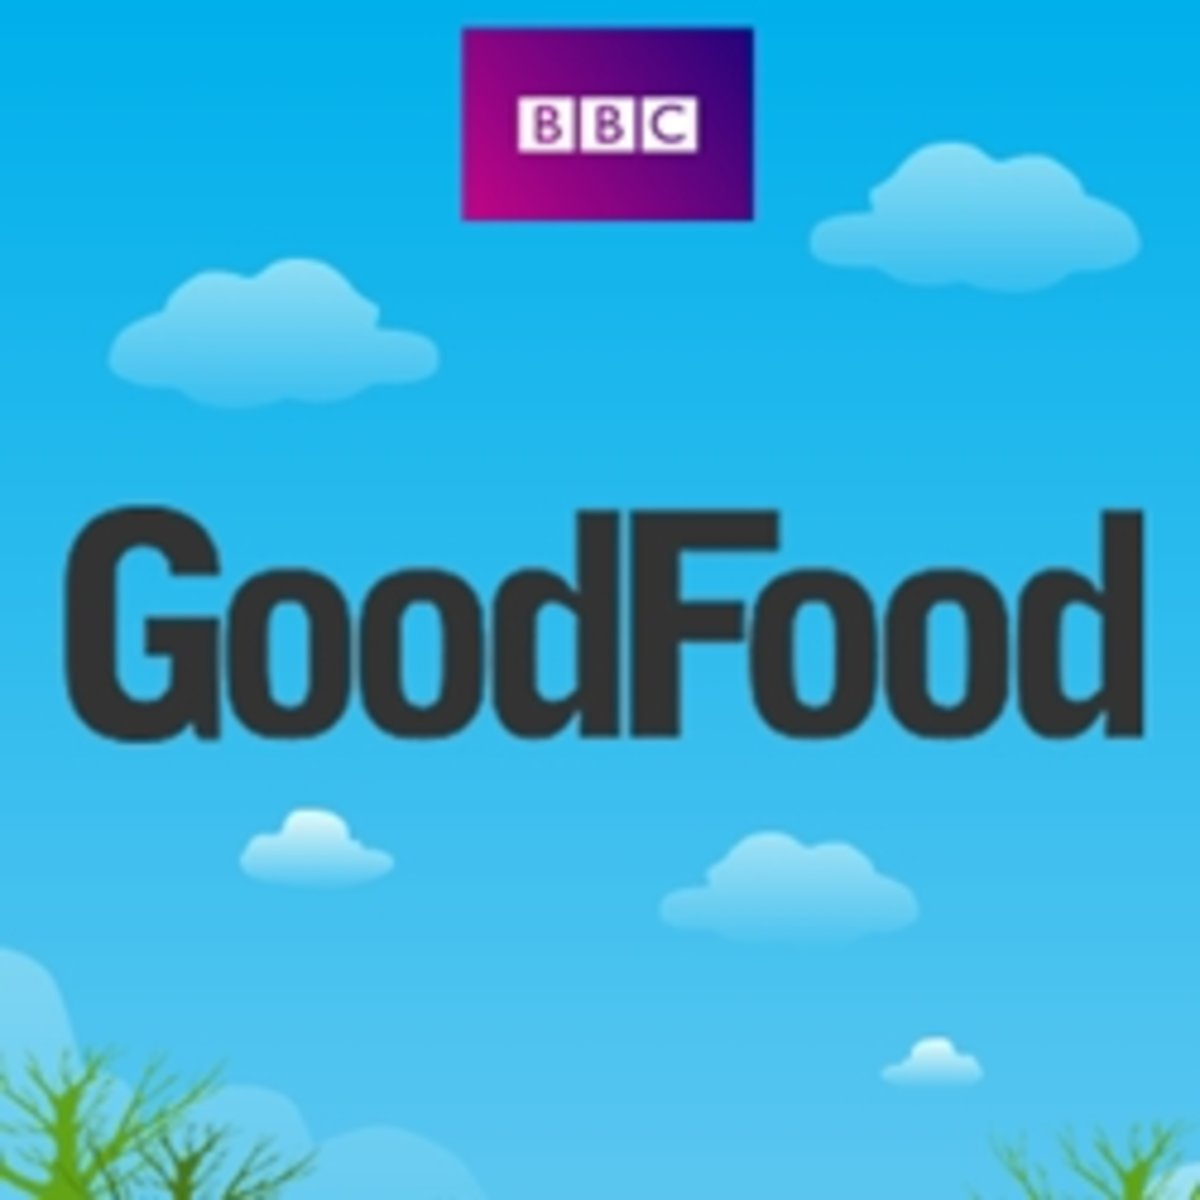 Best good food healthy recipes bbc image collection bbc good food magazine salads foods and healthy recipes good forumfinder Images